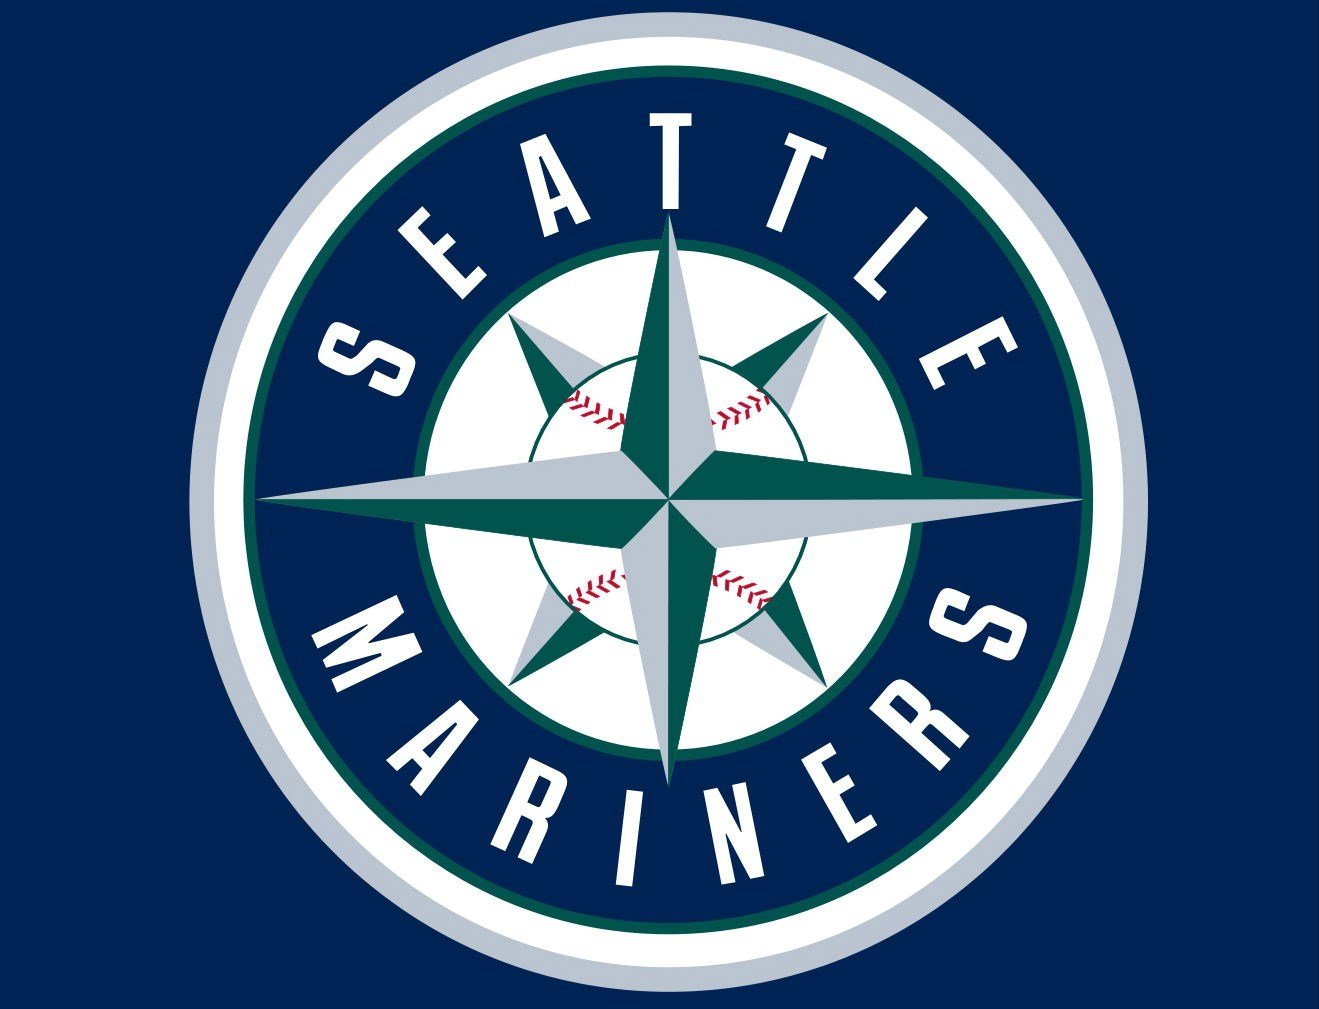 Mariners beat Blue Jays 4-2